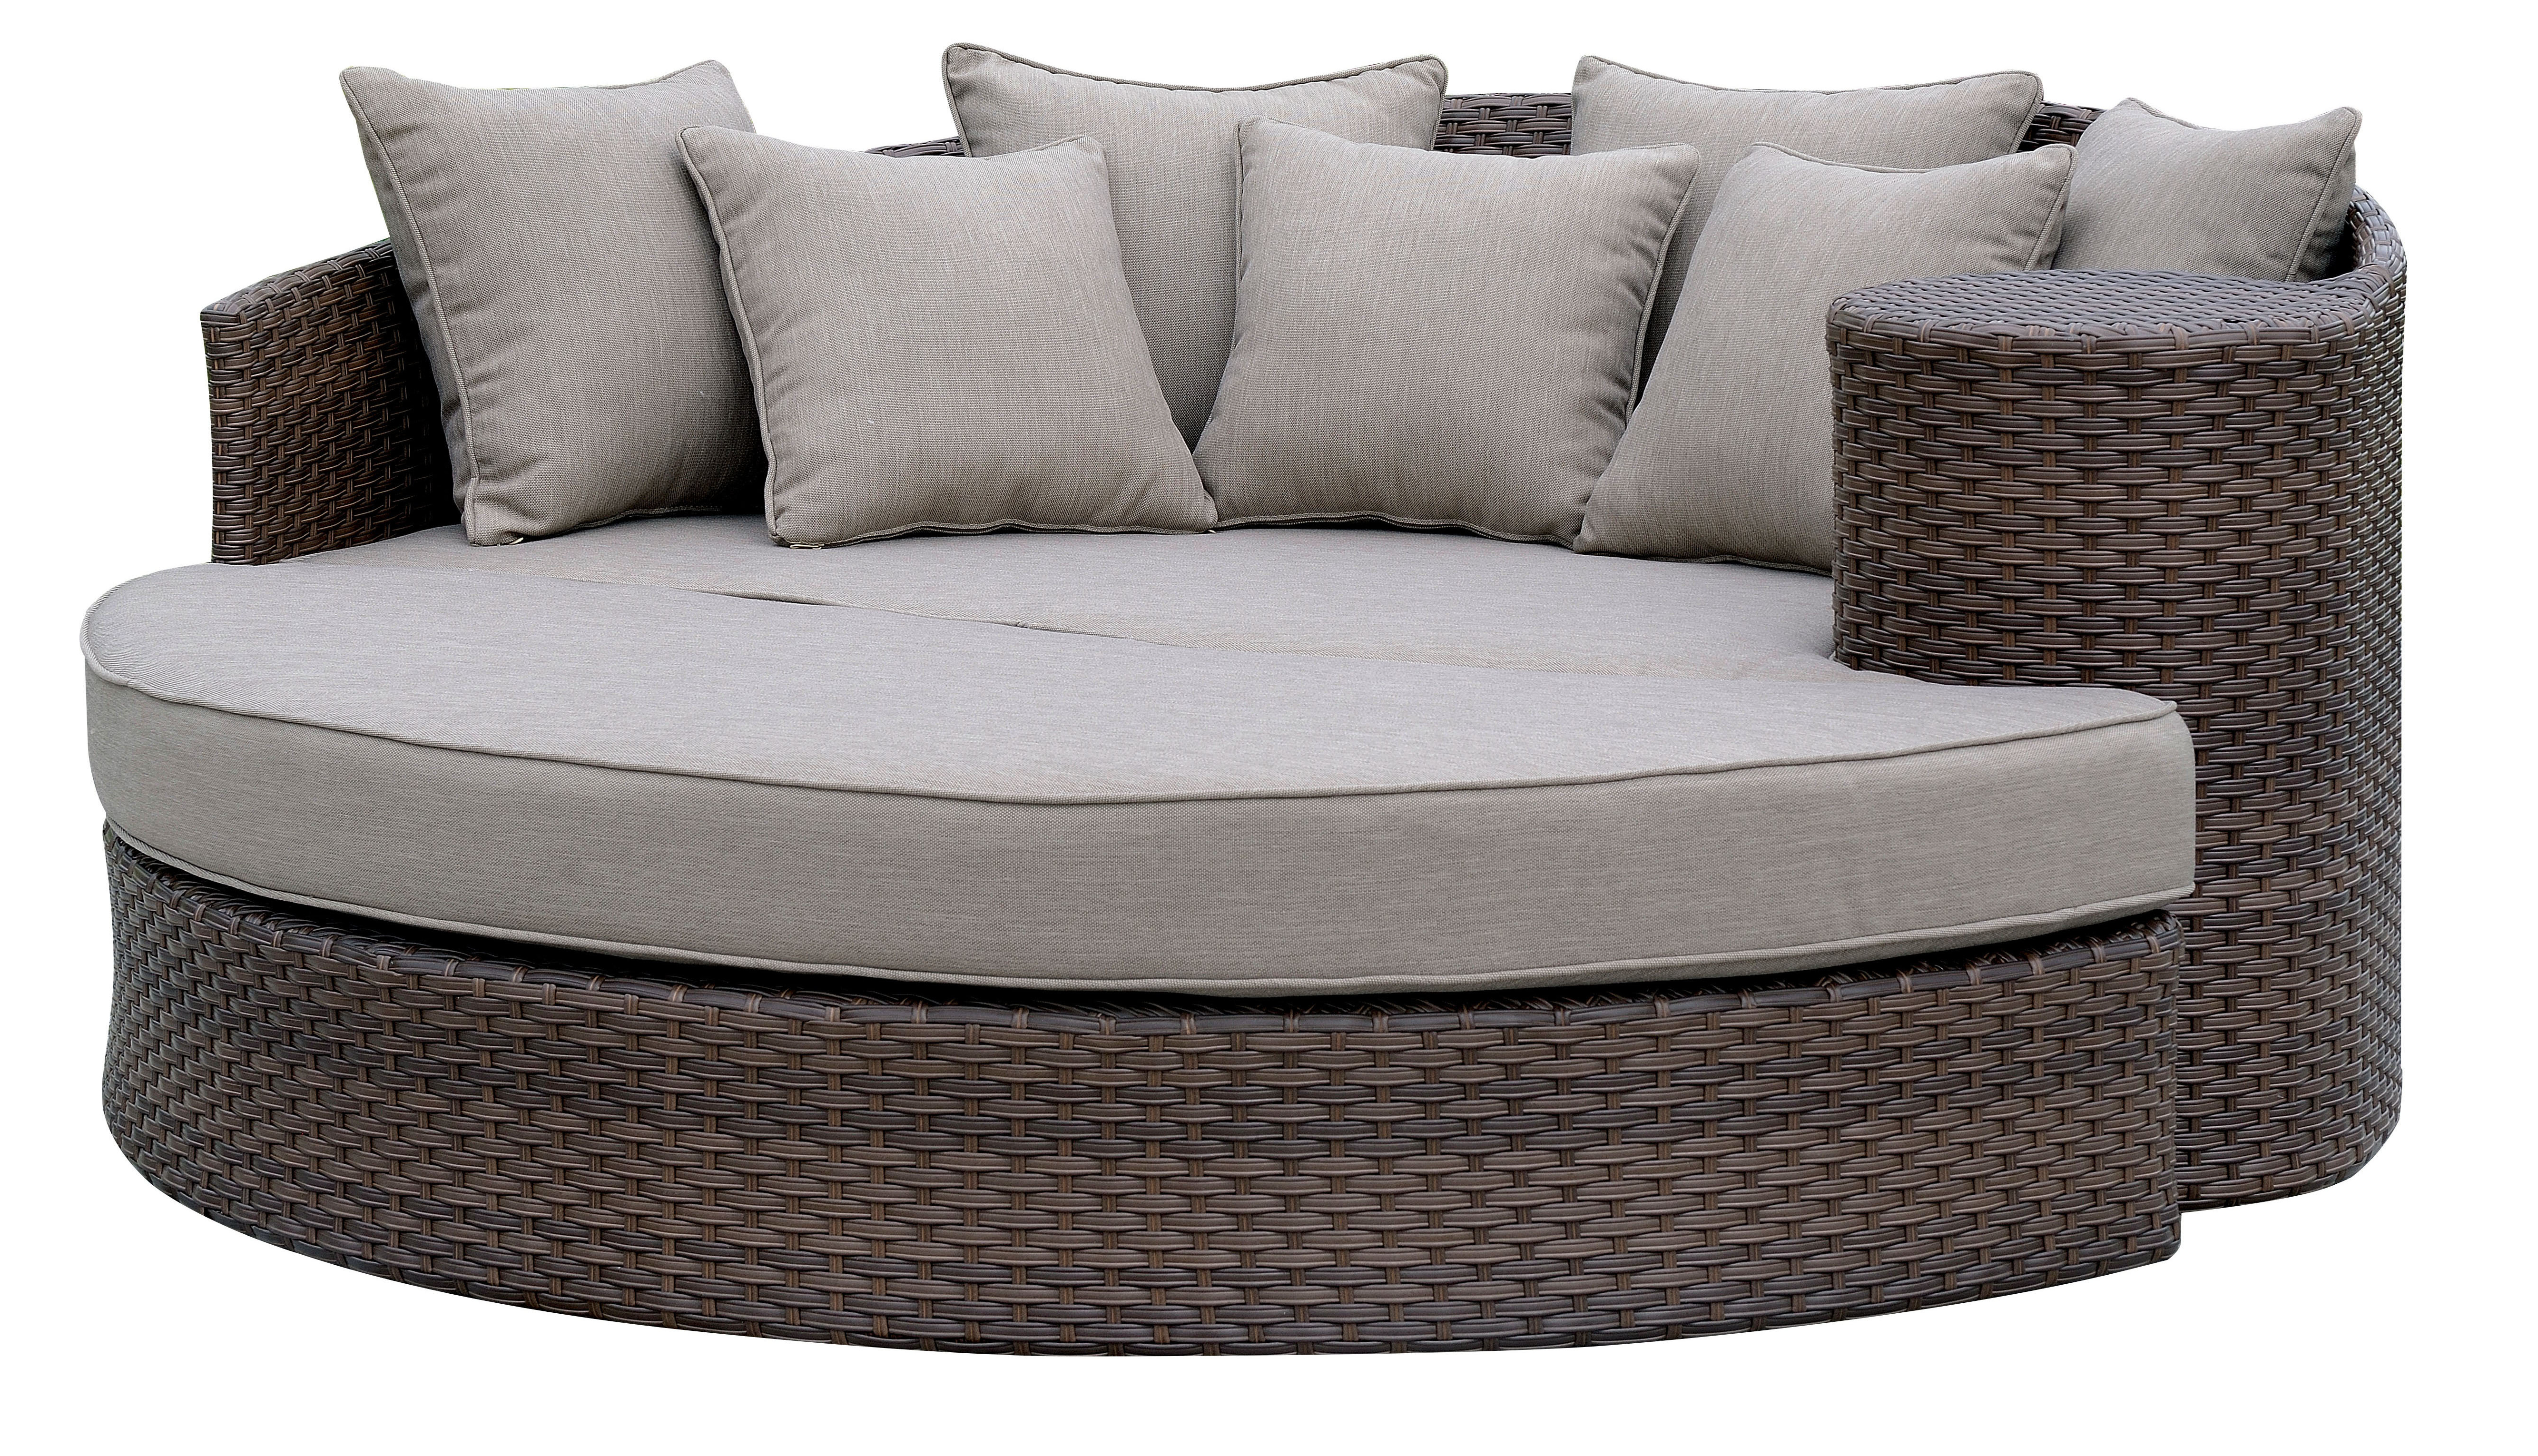 Latest Gilbreath Daybeds With Cushions Within Whyte Contemporary Patio Daybed With Cushions (View 14 of 20)